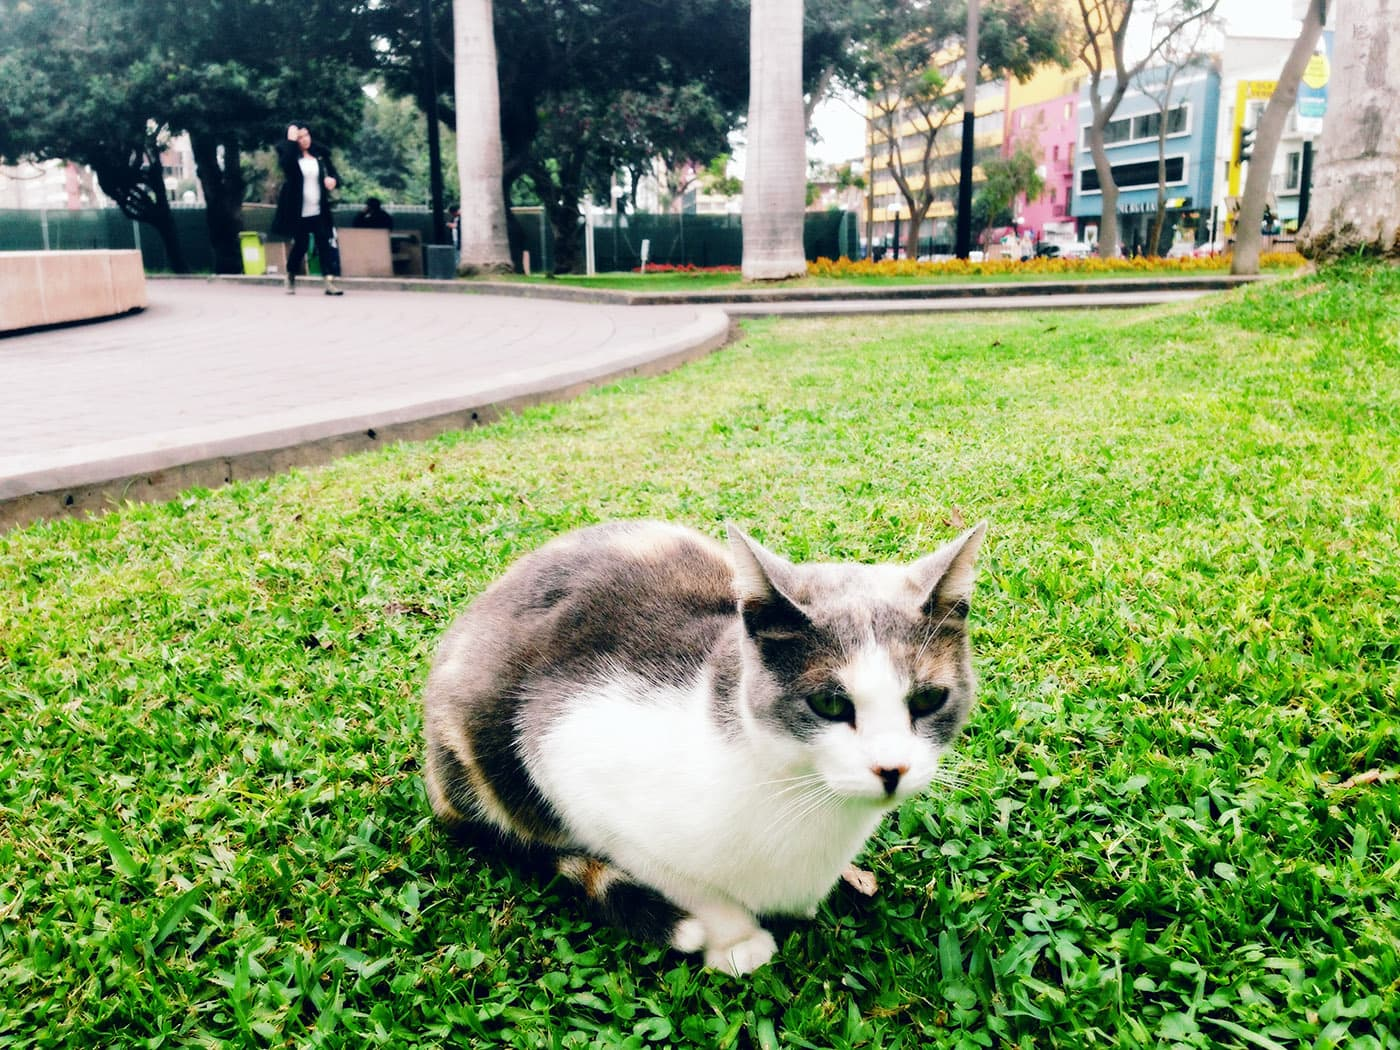 Cats in Parque Central de Miraflores in Lima, Peru